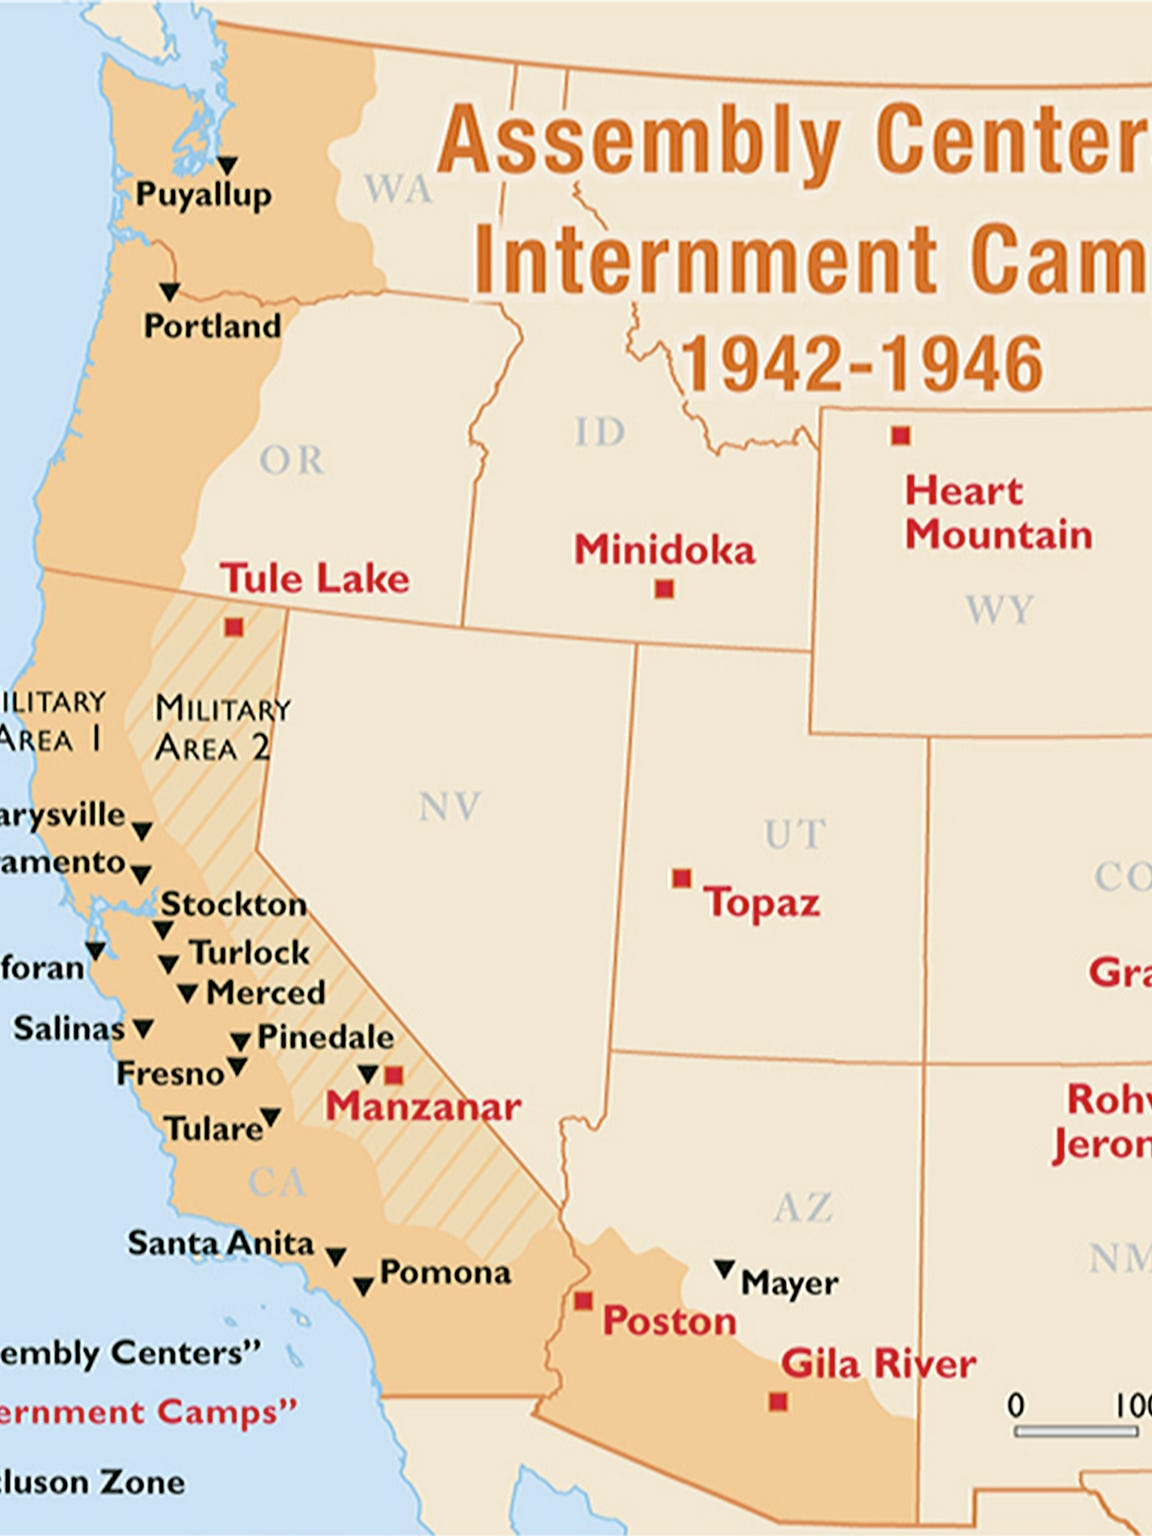 After the bombing of Pearl Harbor in December 1941, Presidential Order #9066 created an area of the West Coast off limits to Japanese Americans, forcing them into internment camps. The Exclusion Line, seen as the dark area, divided the Phoenix-area in two.